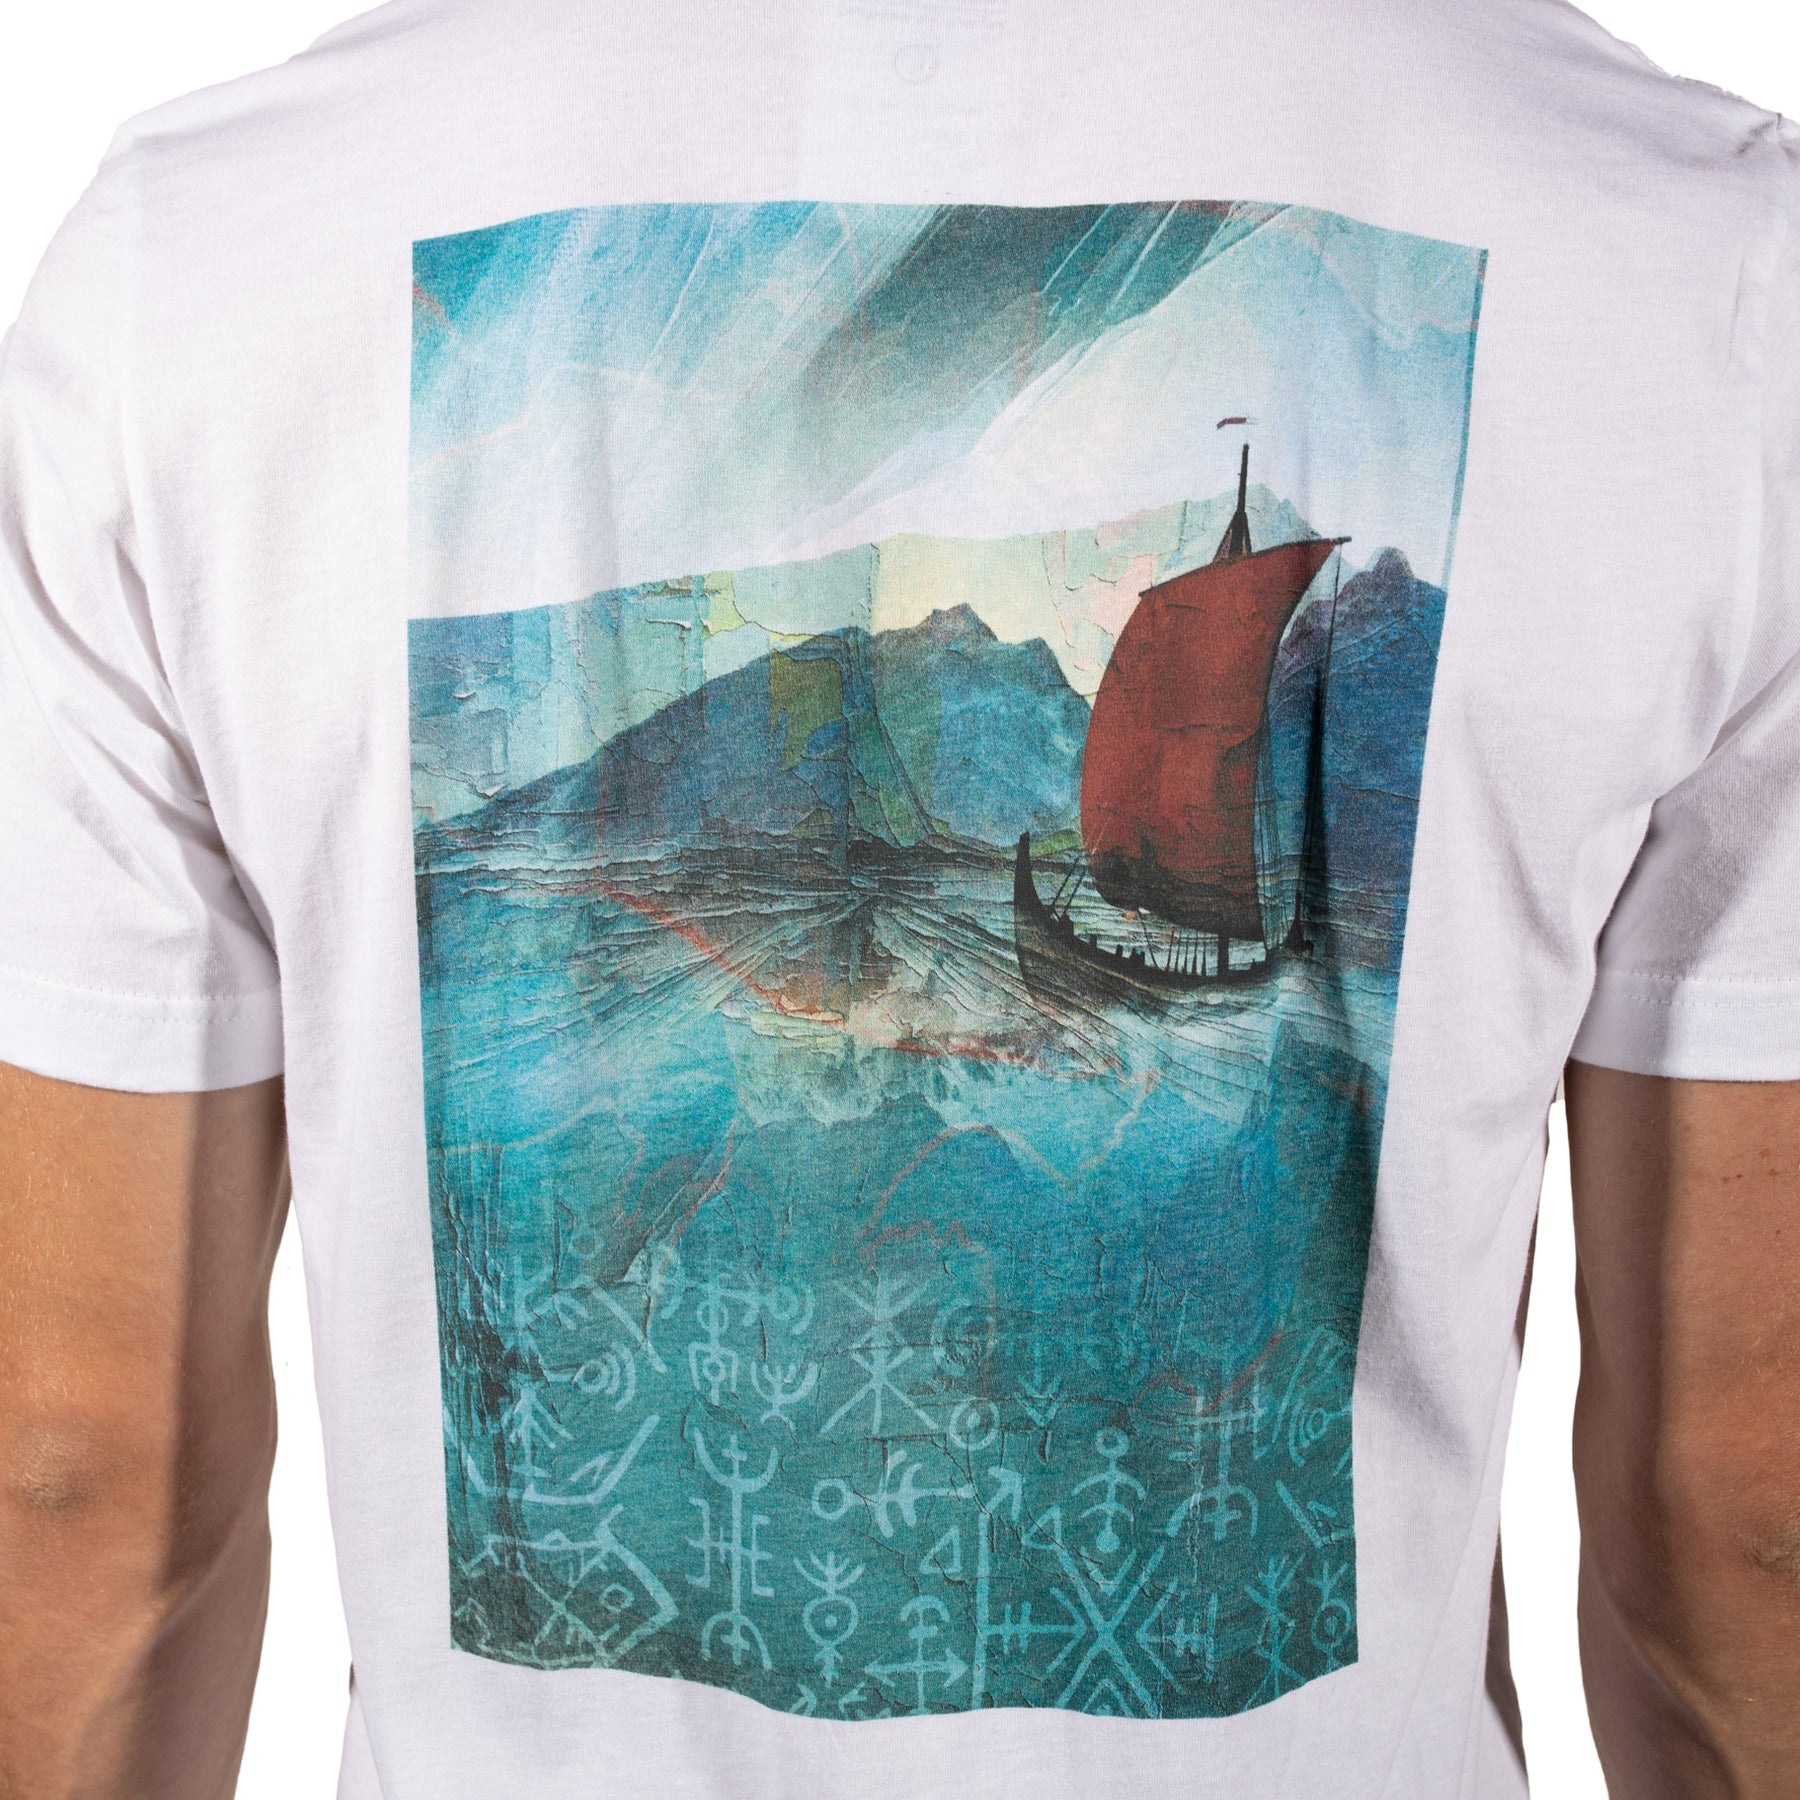 Nomad Art Pocket Tee